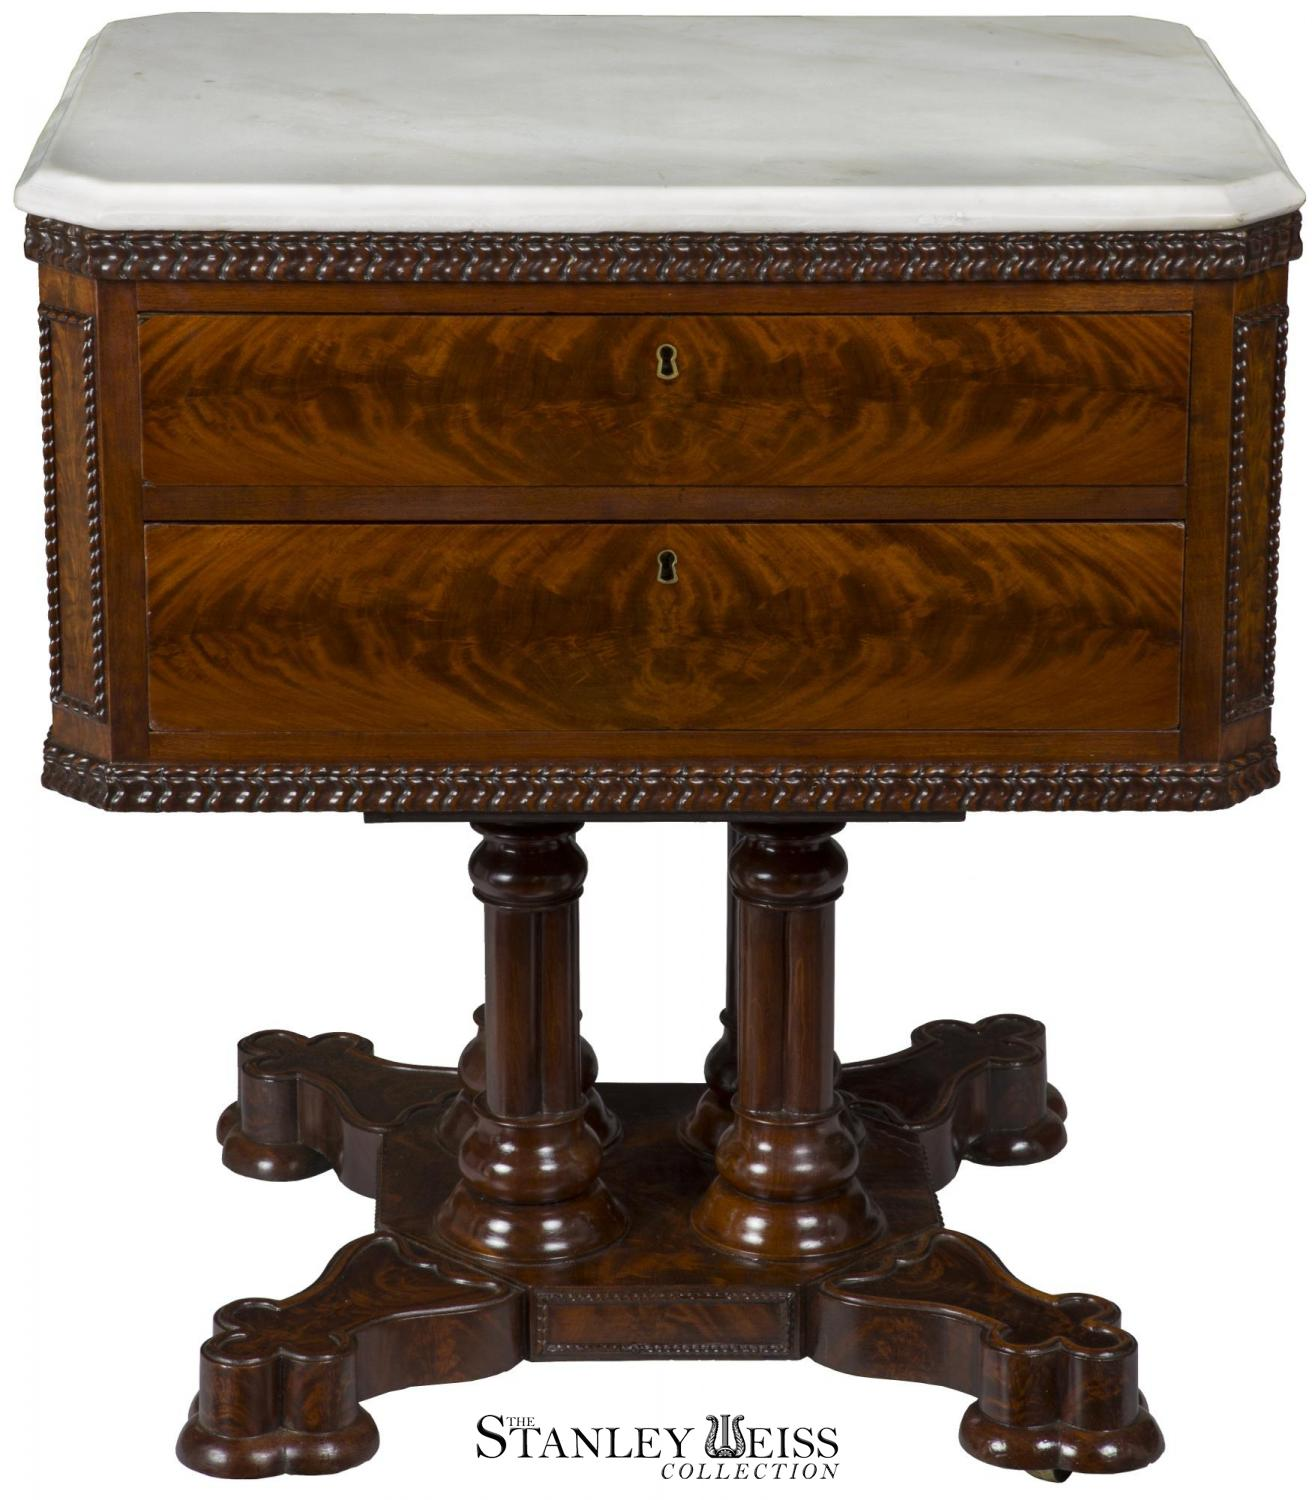 New York Marble Coffee Table: A Rare Classical/Gothic Figured Mahogany Marble Top Mixing